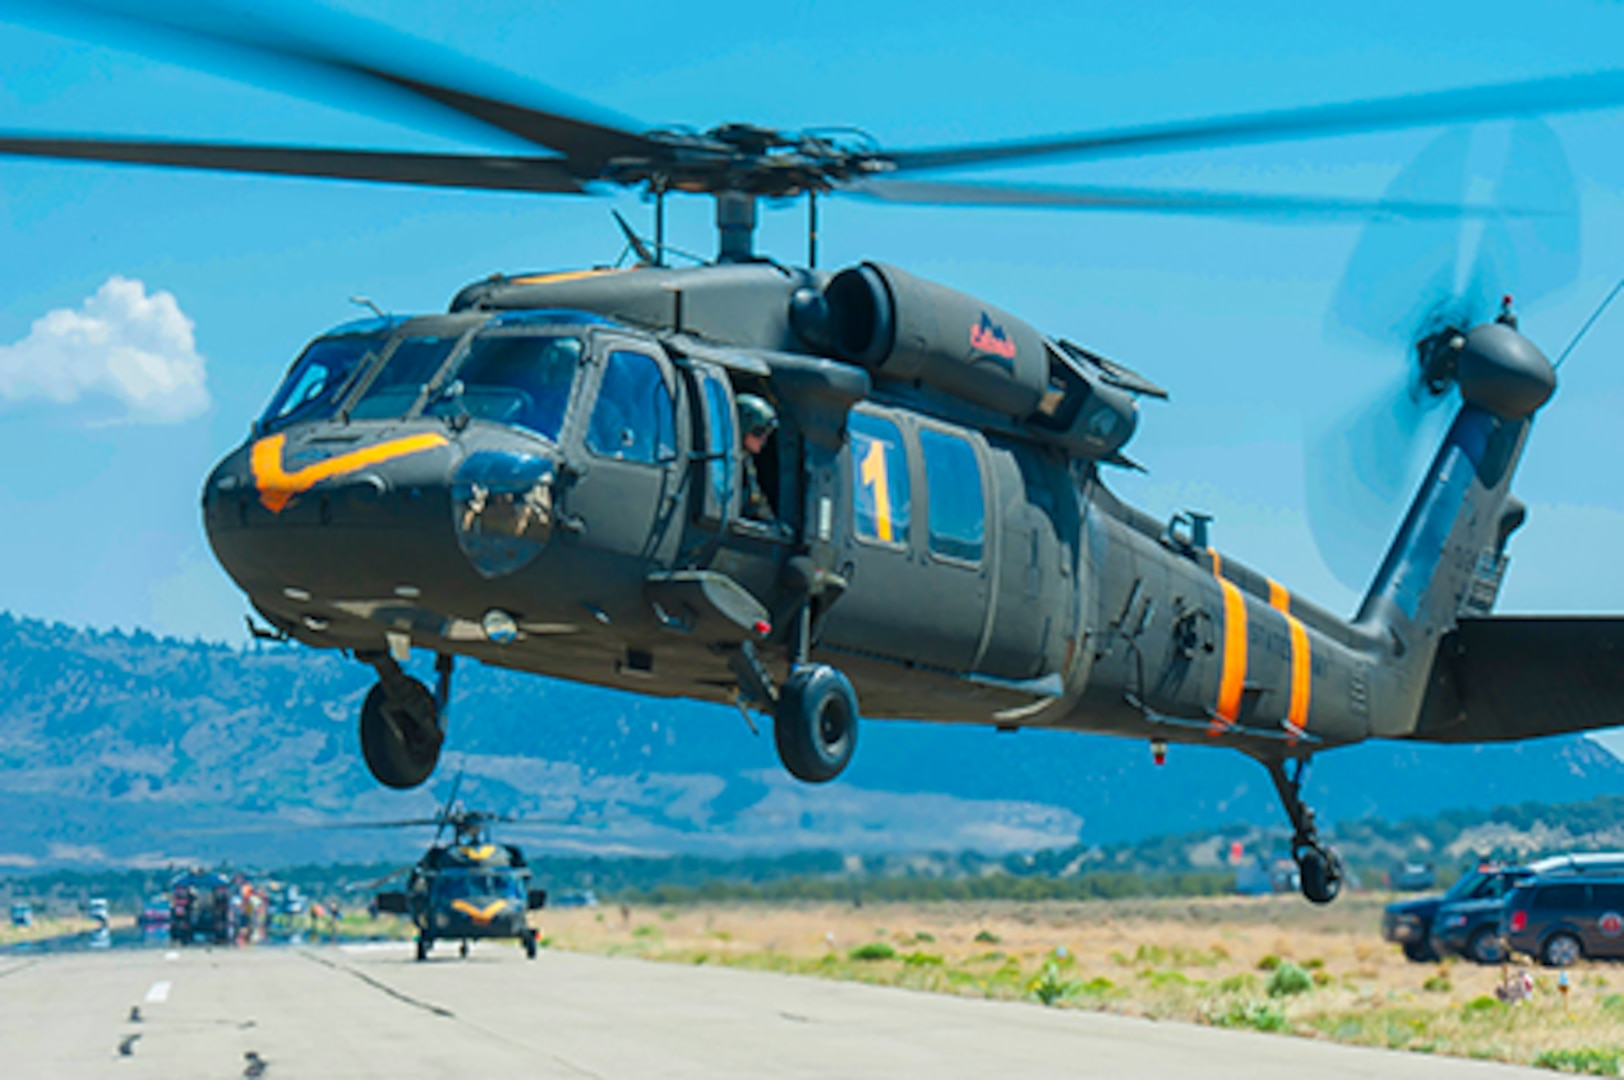 Two UH-60 Black Hawk helicopter crews with aircraft, equipped with aerial water buckets, from the Chief Warrant Officer 5 David R. Carter Army Aviation Support Facility based at Buckley Air Force Base, Aurora, Colorado, depart the Spring Fire helibase, in Fort Garland, Colo., to support fire suppression efforts July 6, 2018. The team arrived and began operations July 2.  The CONG has supported the Spring Fire since July 1, 2018, providing capabilities to include: security personnel for traffic control points and roving patrols; two UH-60 Black Hawk helicopter crews and aircraft each equipped with aerial water buckets; geological information system operators; as well as, refueling crews with Heavy Expanded Mobility Tactical refueling trucks and firefighters with HEMTT firefighting vehicles.  The CONG has been providing an aviation search and rescue standby capability in support of the Rocky Mountain Area Coordination Center since July 1. The High-Altitude Army National Guard Aviation Training Site facility in Gypsum, Colorado, is supporting the mission which is rapid response to aviation search and rescue missions, primarily for firefighter safety, in support of multiple wildfire responses throughout Colorado.  On order of the Governor, the standing Joint Task Force - Centennial commands and integrates CONG forces to support civil authorities in assisting Colorado, or supported states, during times of crisis and disaster, to save lives, prevent suffering, and mitigate great property damage.  (U.S. Air National Guard photo by Tech. Sgt. Nicole Manzanares)